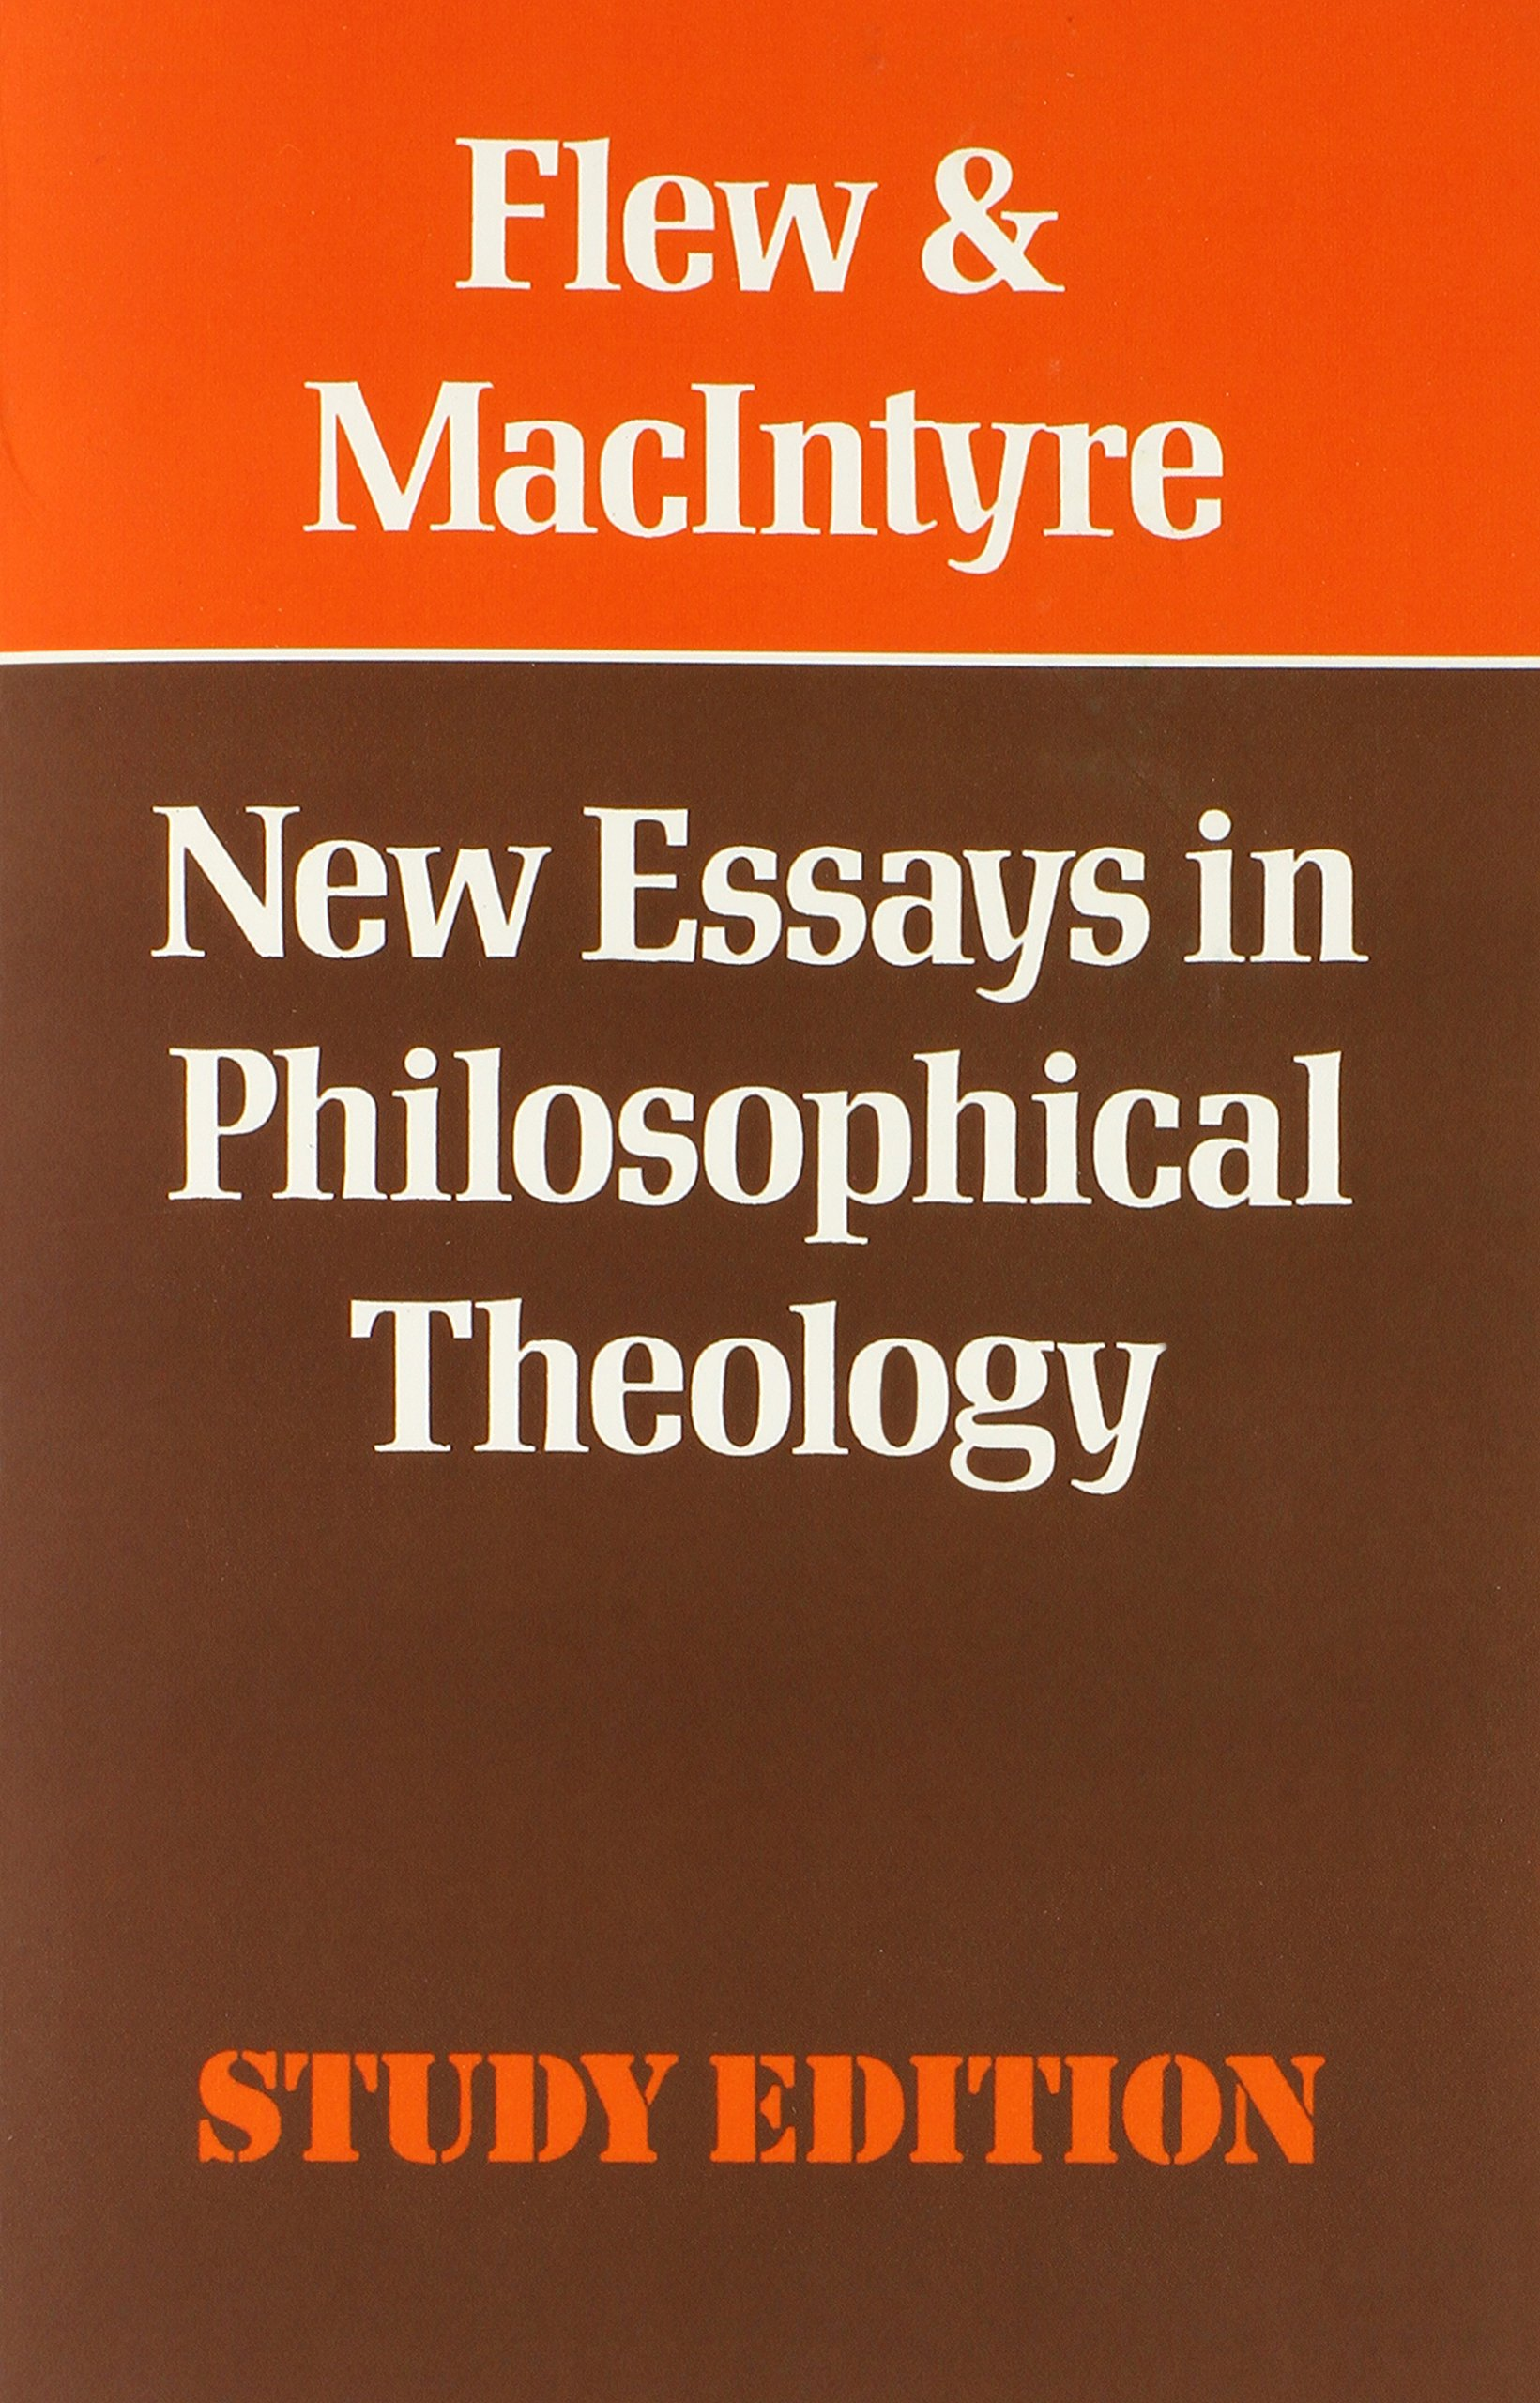 new essays in philosophical theology anthony flew  new essays in philosophical theology anthony flew 9780334046219 com books